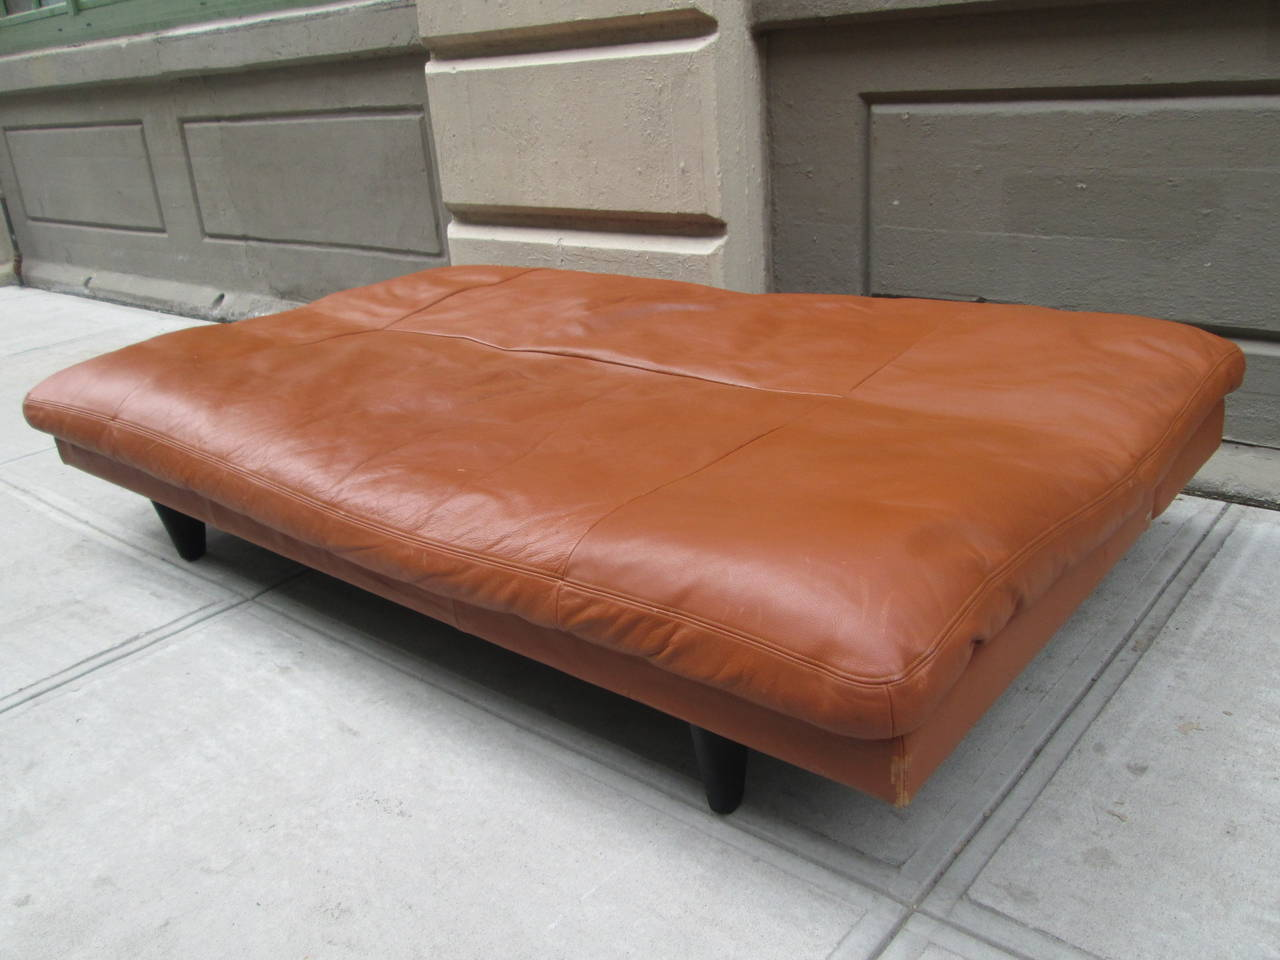 Leather Convertible Sofa By De Sede. The Back Slides Down To Convert Into A  Comfortable